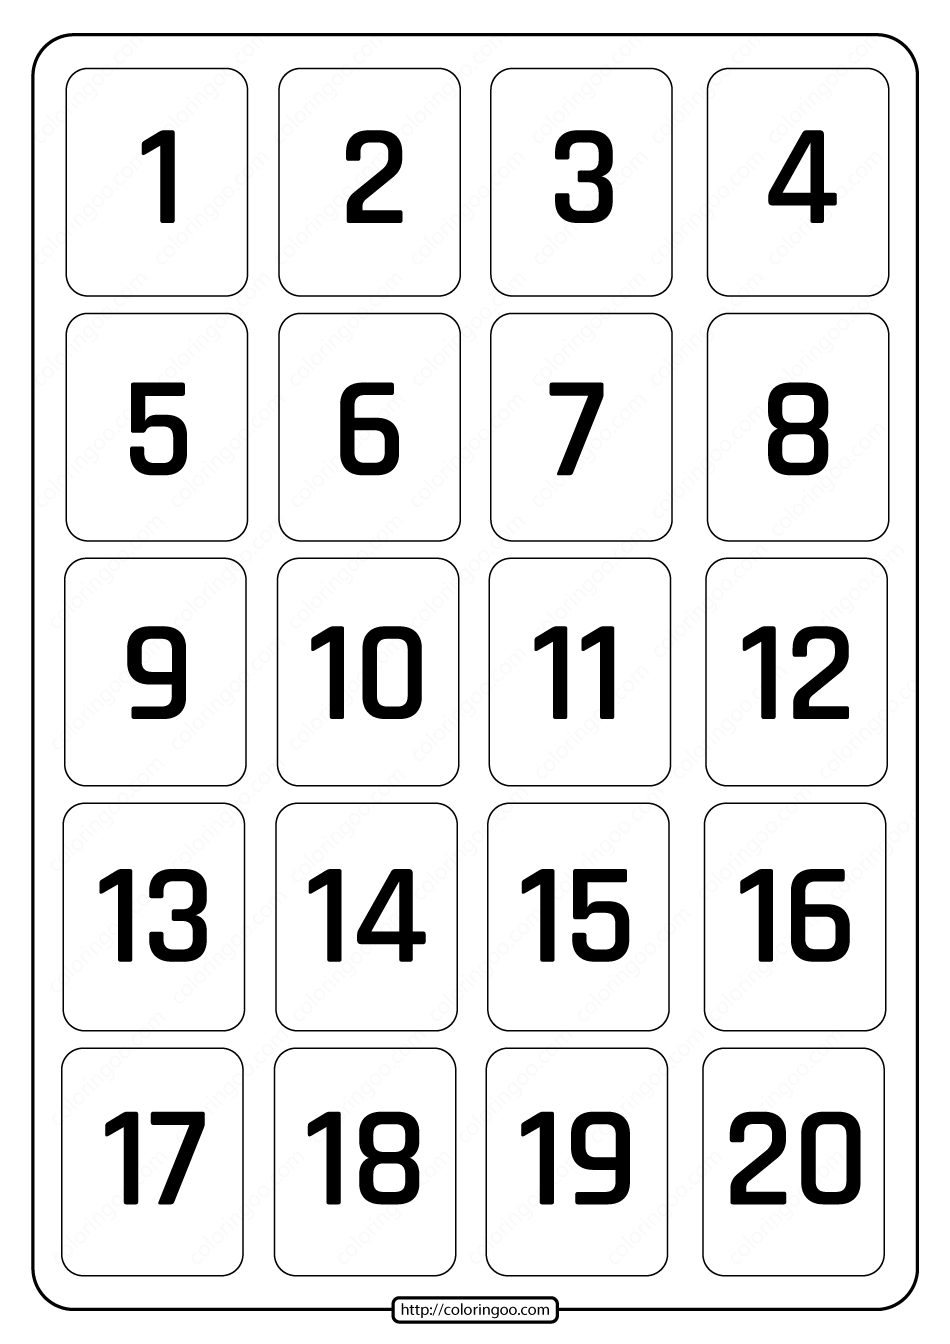 Printable 1 to 20 Rectangle Border Numbers Worksheet 04